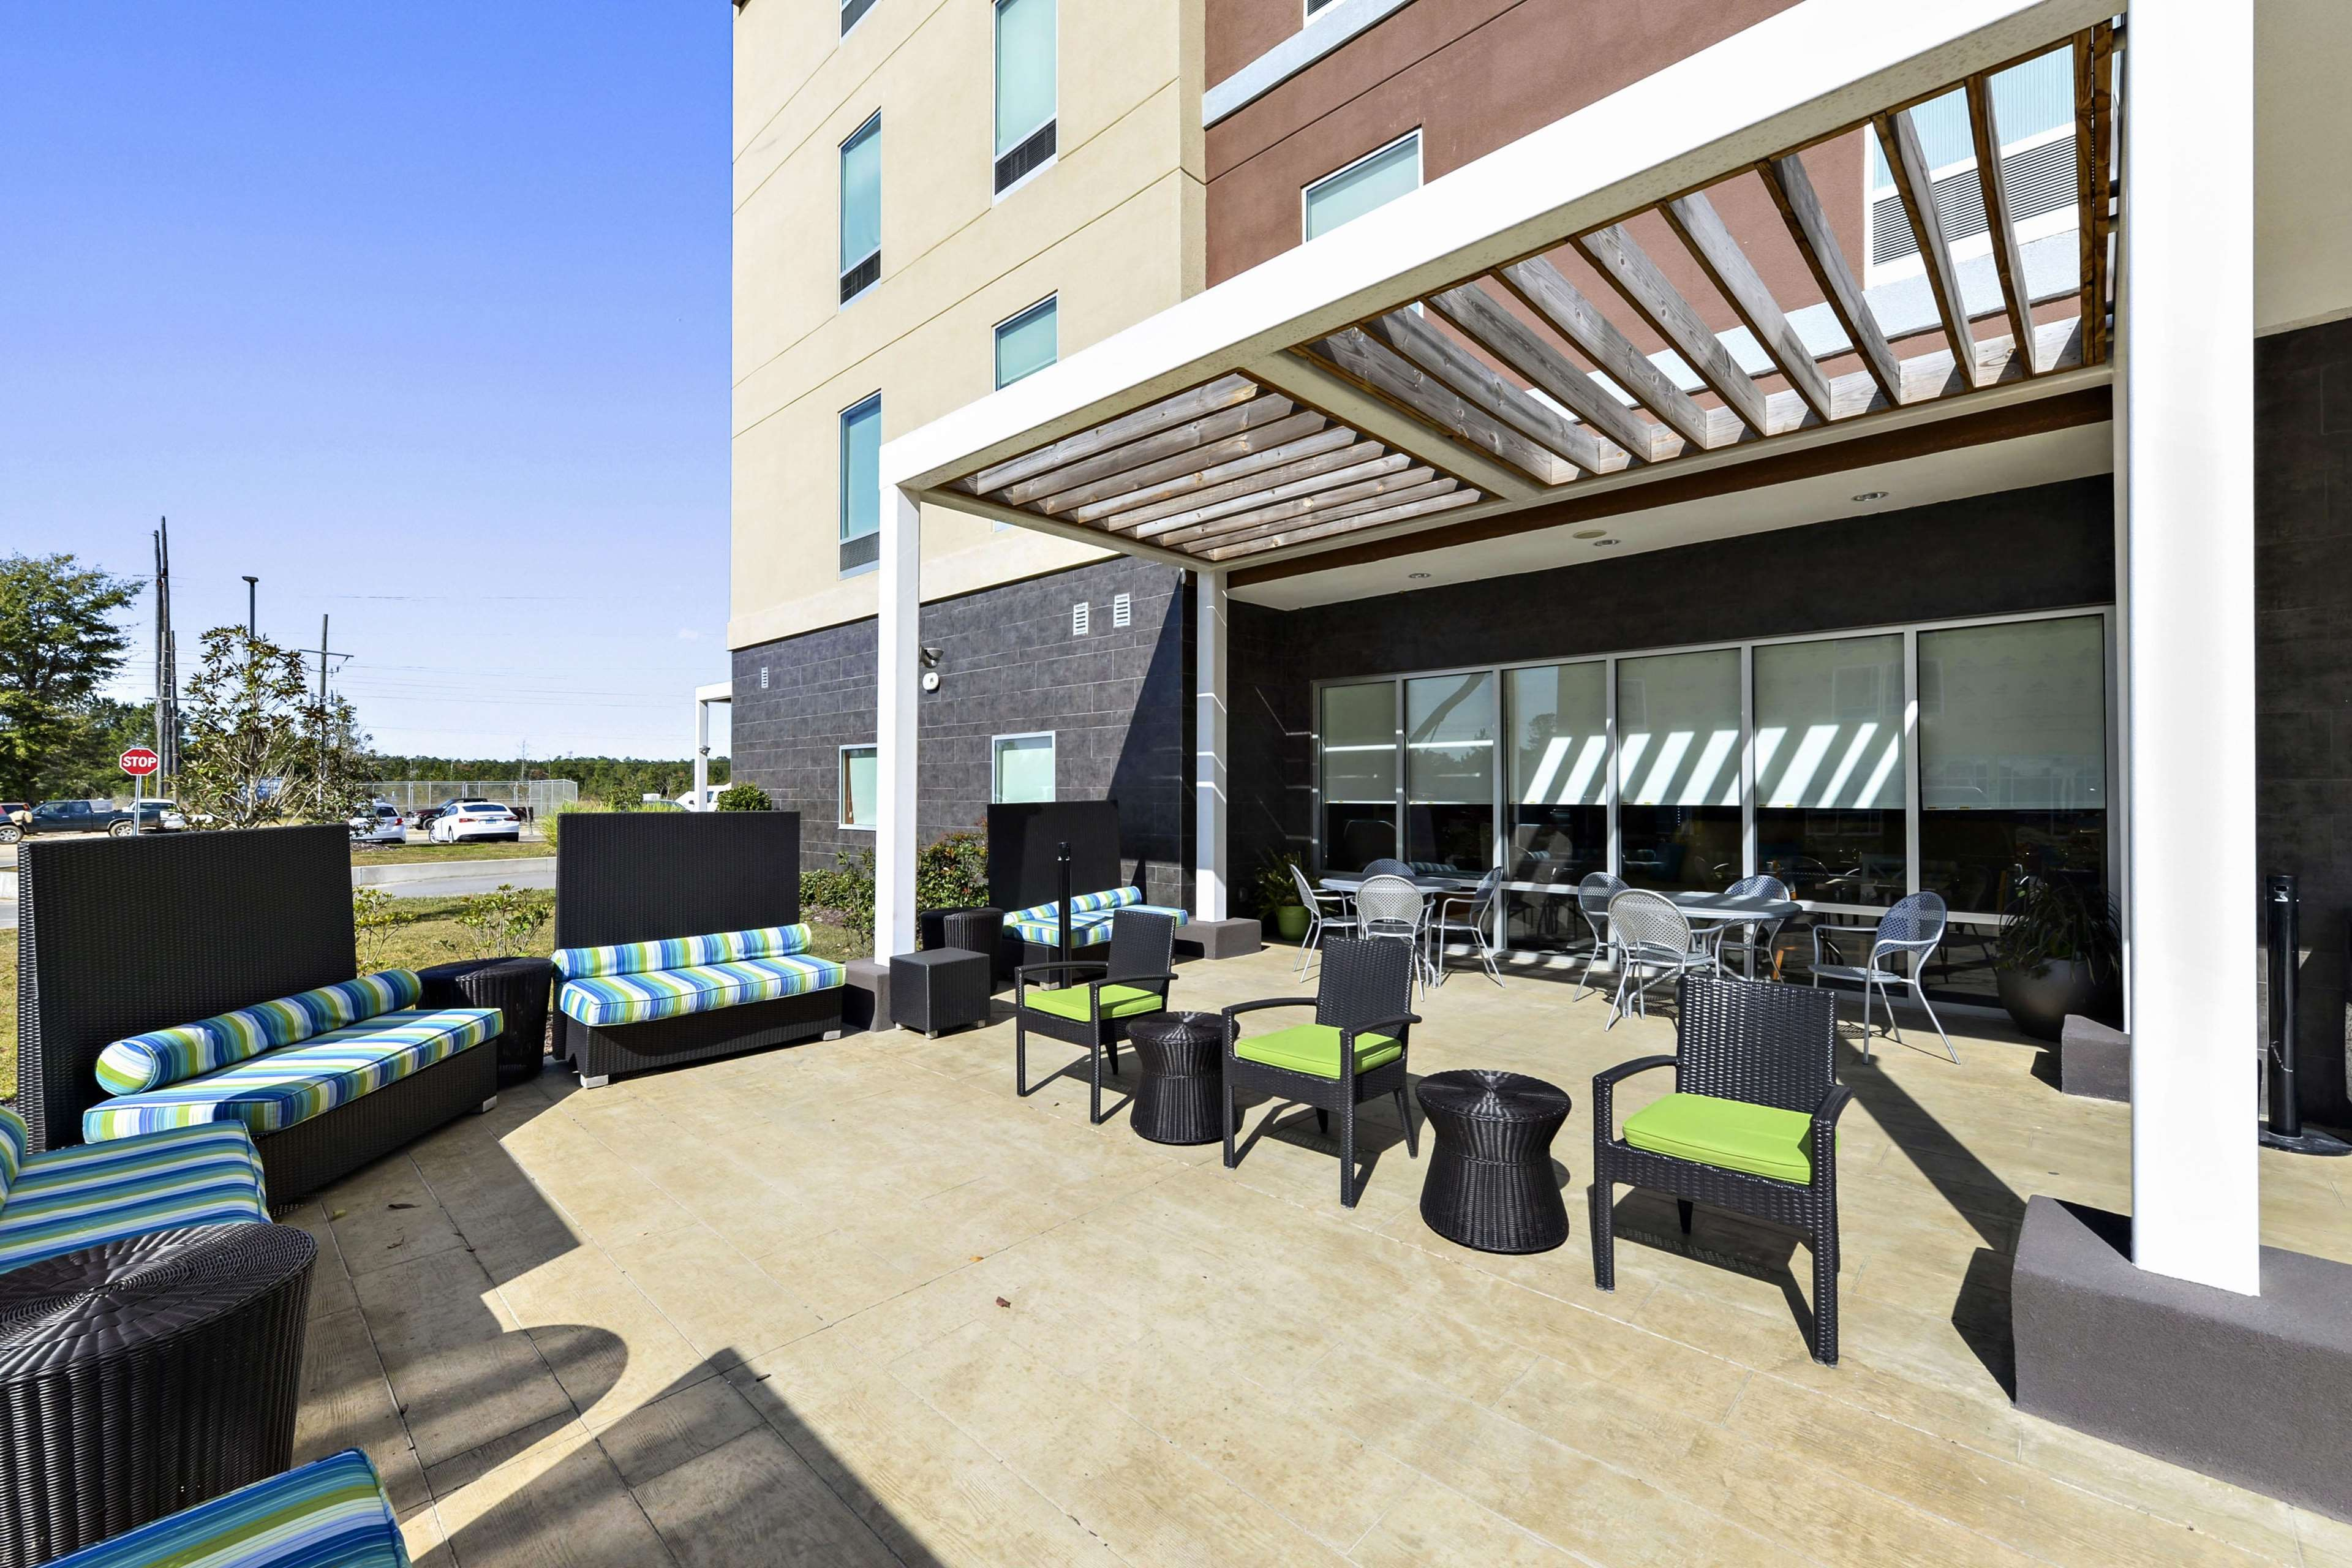 Home2 Suites by Hilton Gulfport I-10 image 2